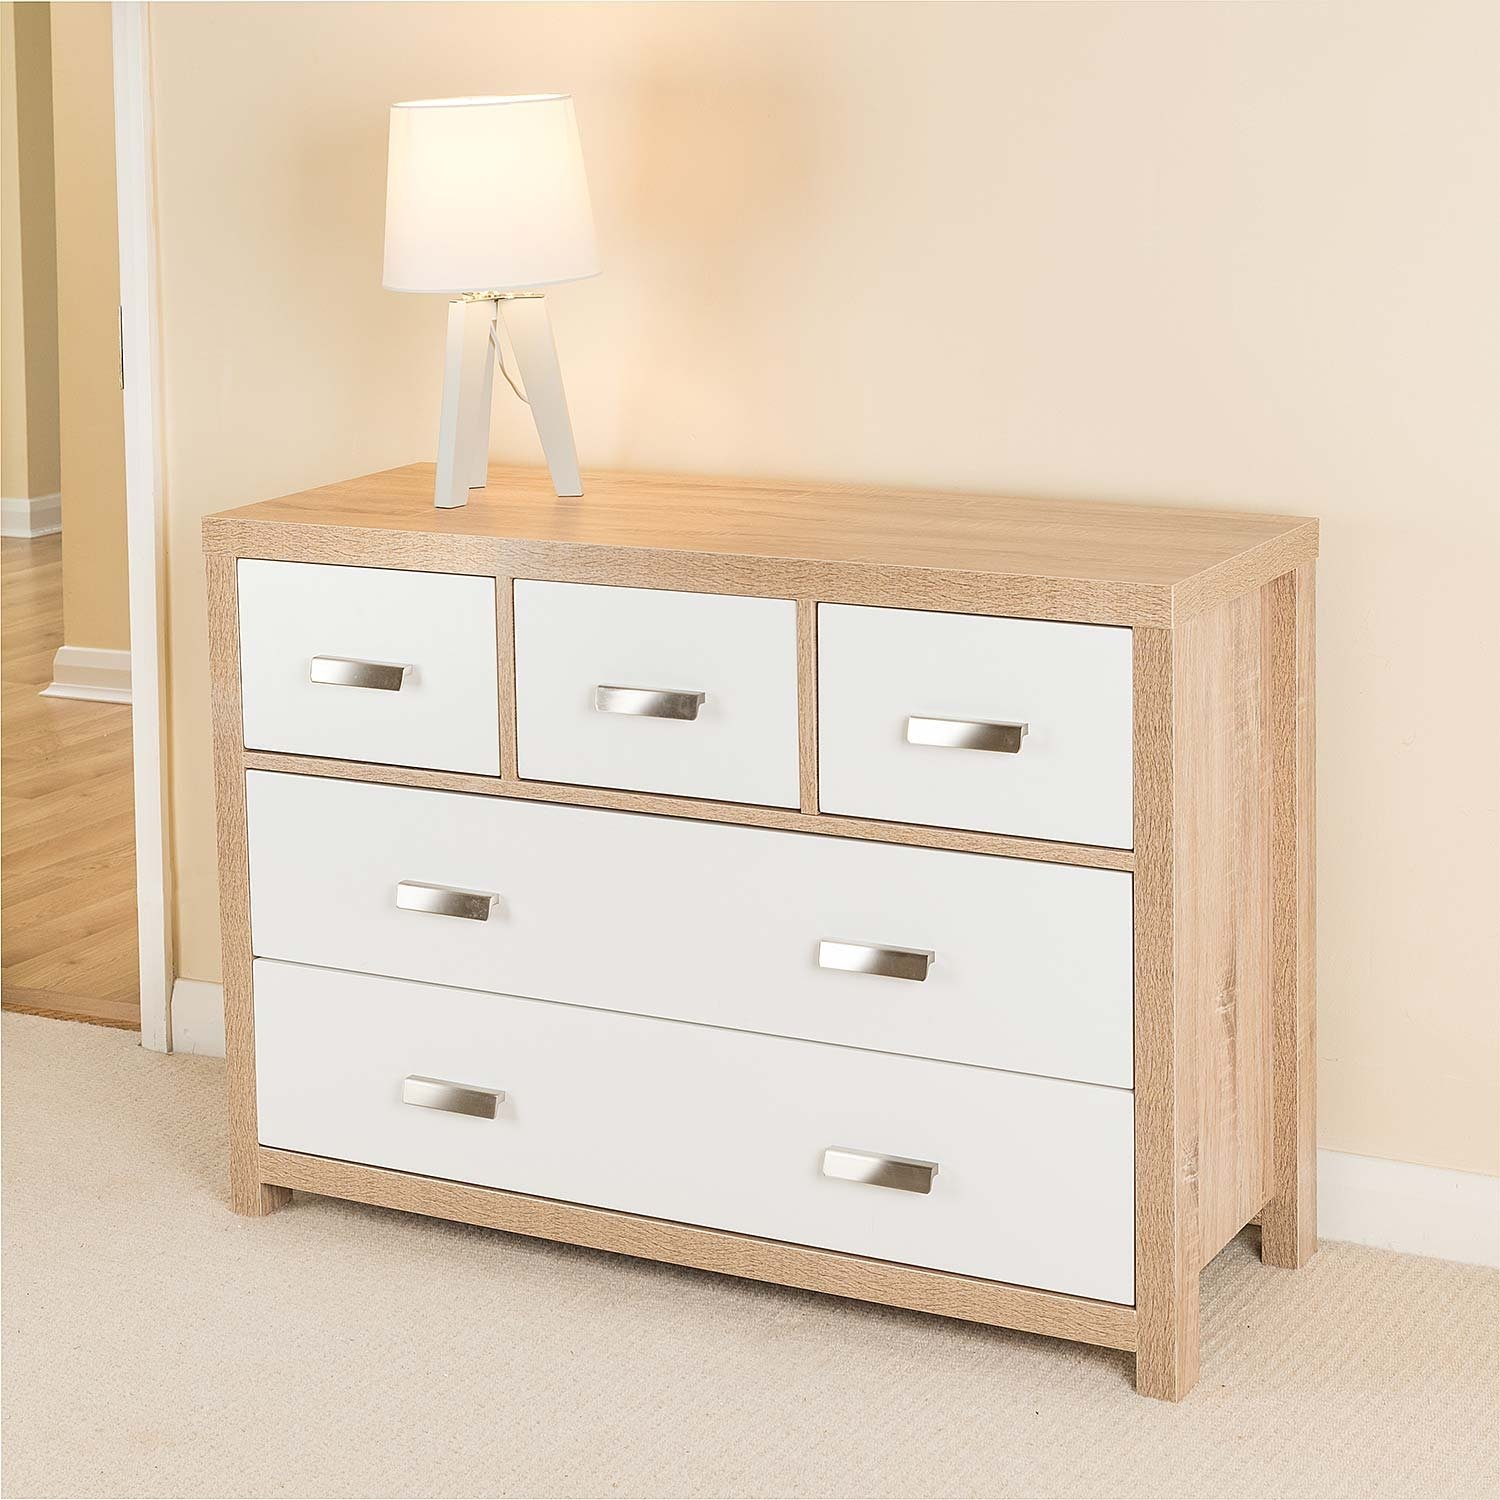 5 Draw Oak Effect Chest of Drawers w/Modern White Wood Design Bianco